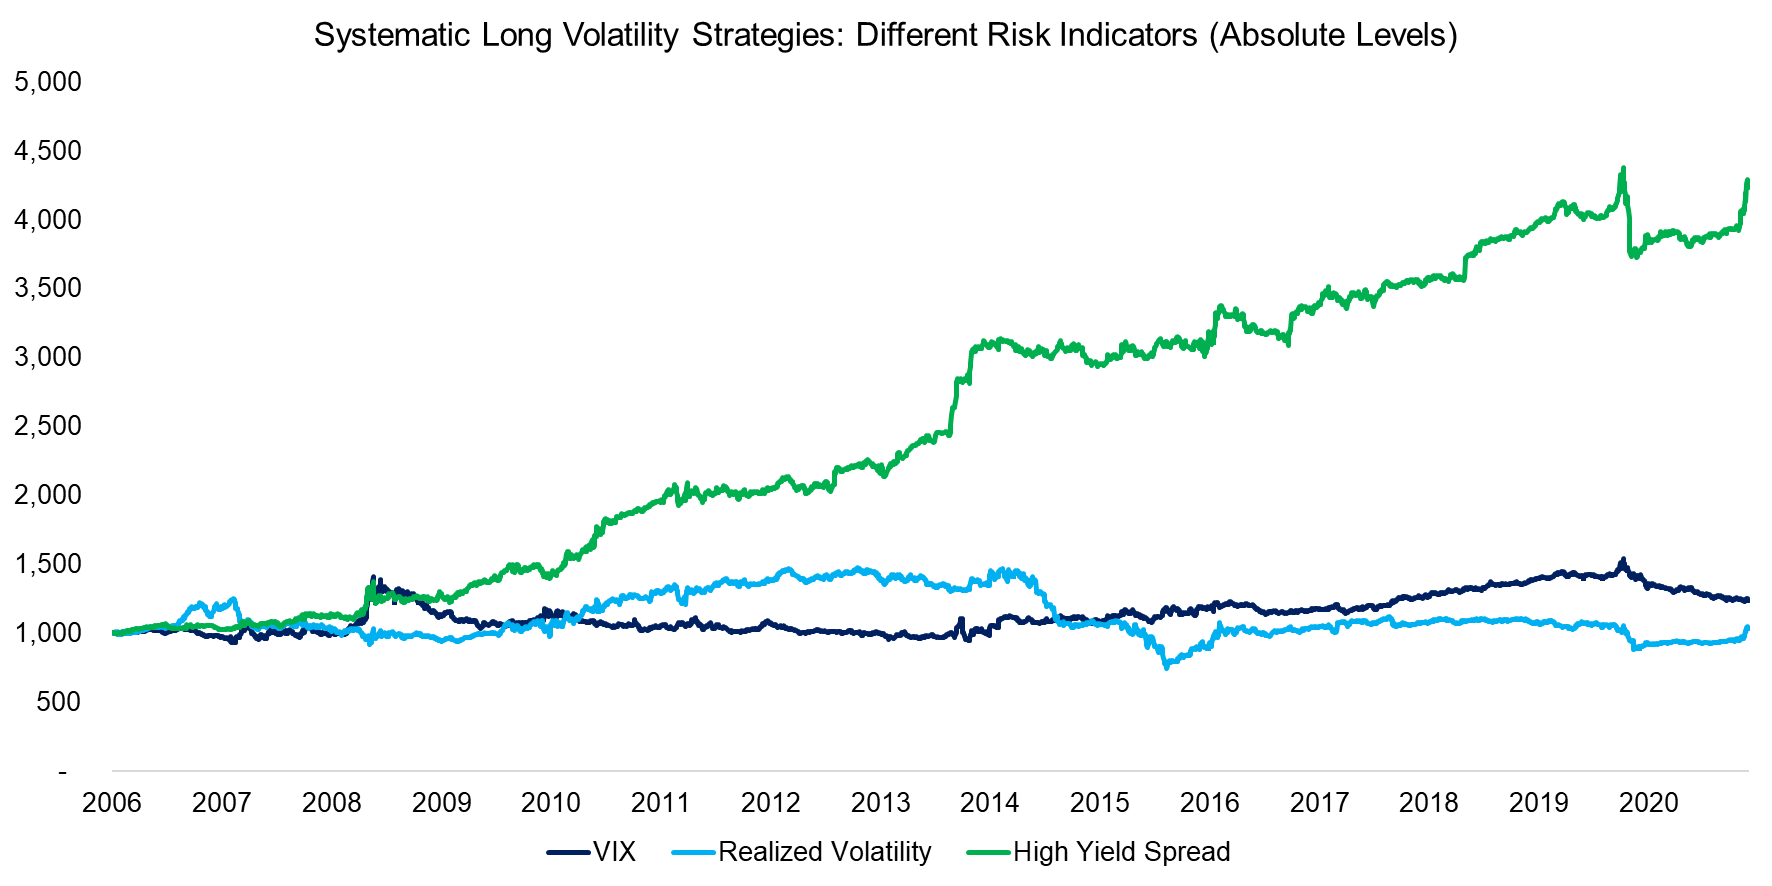 Systematic Long Volatility Strategies Different Risk Indicators (Absolute Levels)